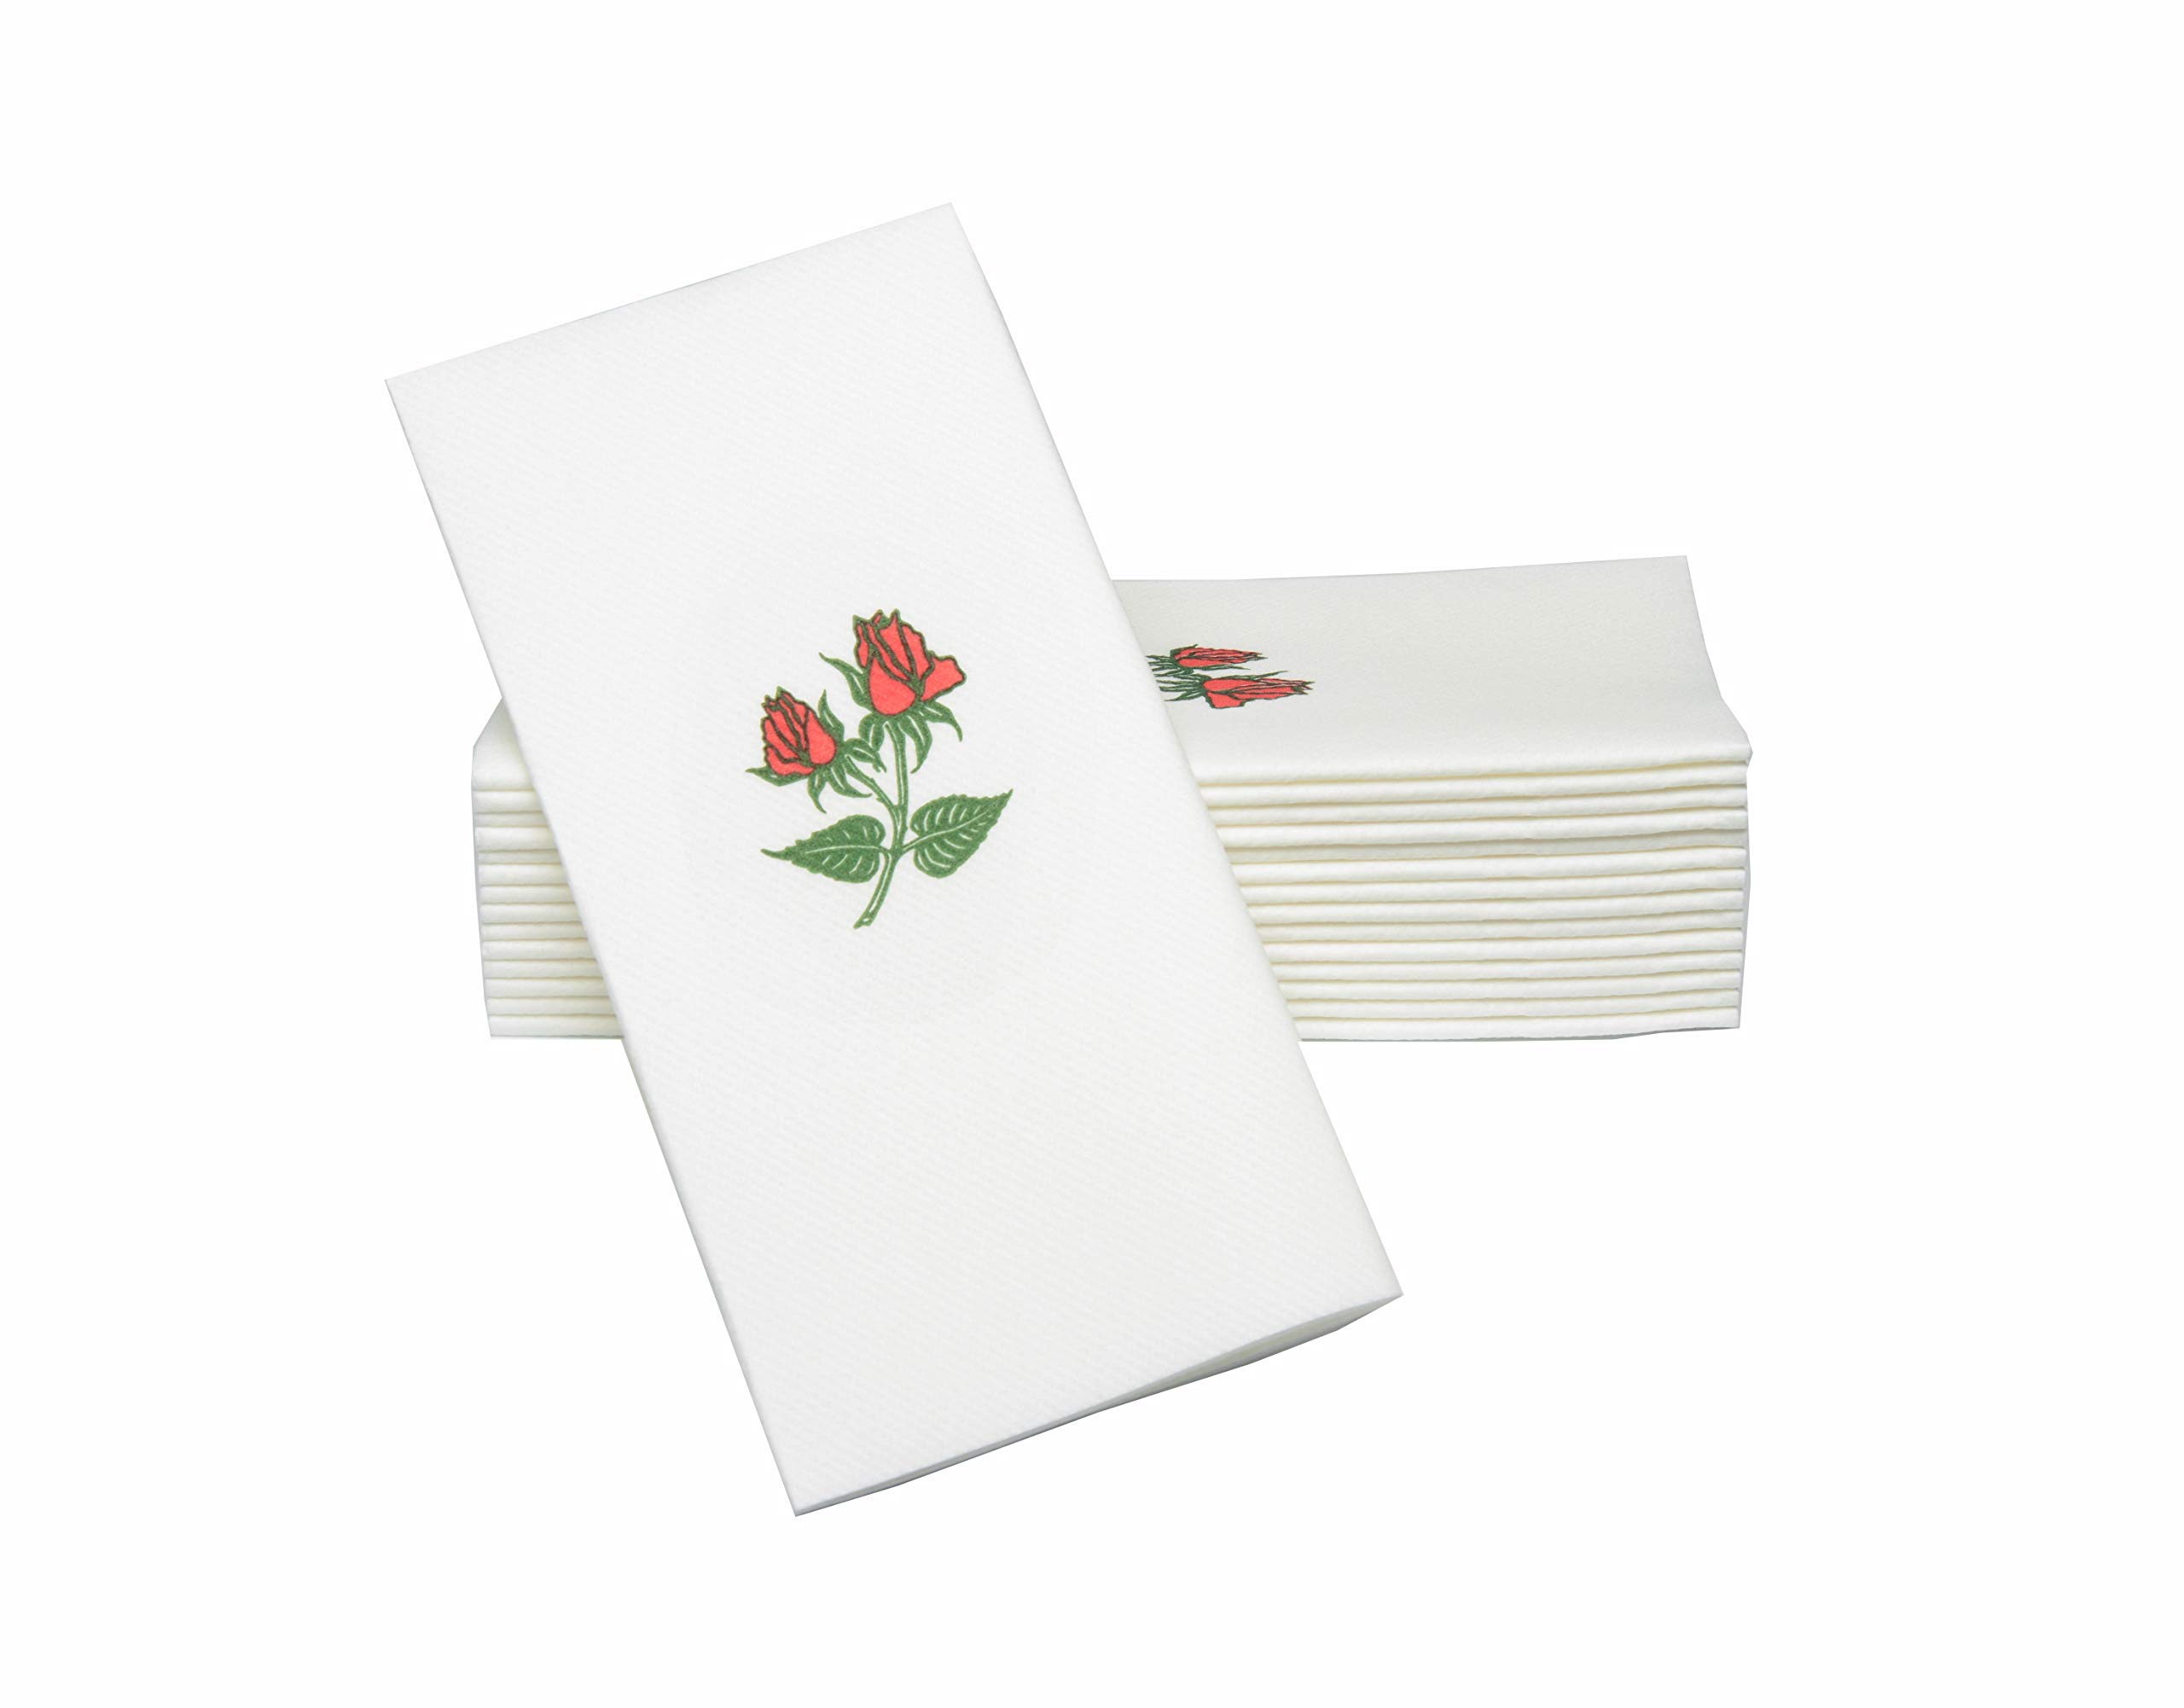 """Simulinen Dinner Napkins - Decorative Napkins - Cloth Like & Disposable Double Rose with Pocket - Elegant & Durable - Soft & Absorbent - Large 17""""x17"""" - Packaged for Easy Storage - Box of 75"""